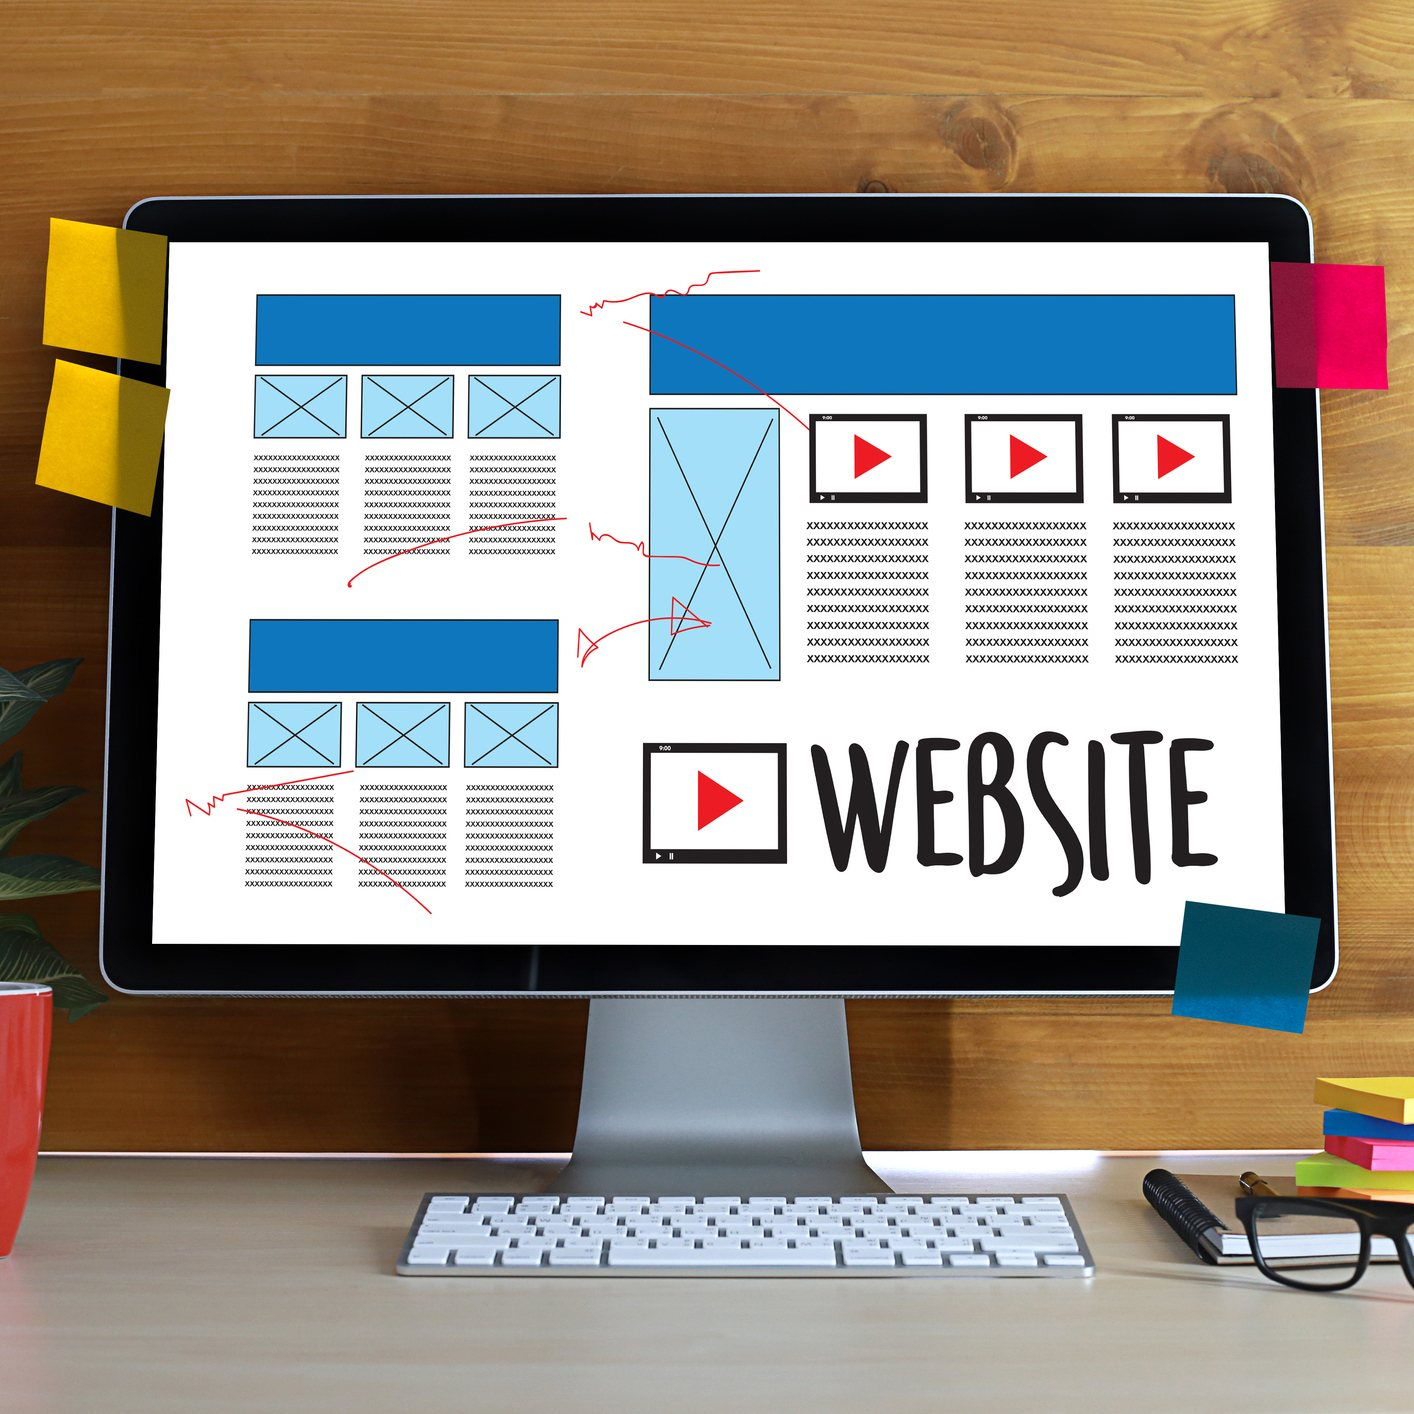 Your Website Needs to be Updated